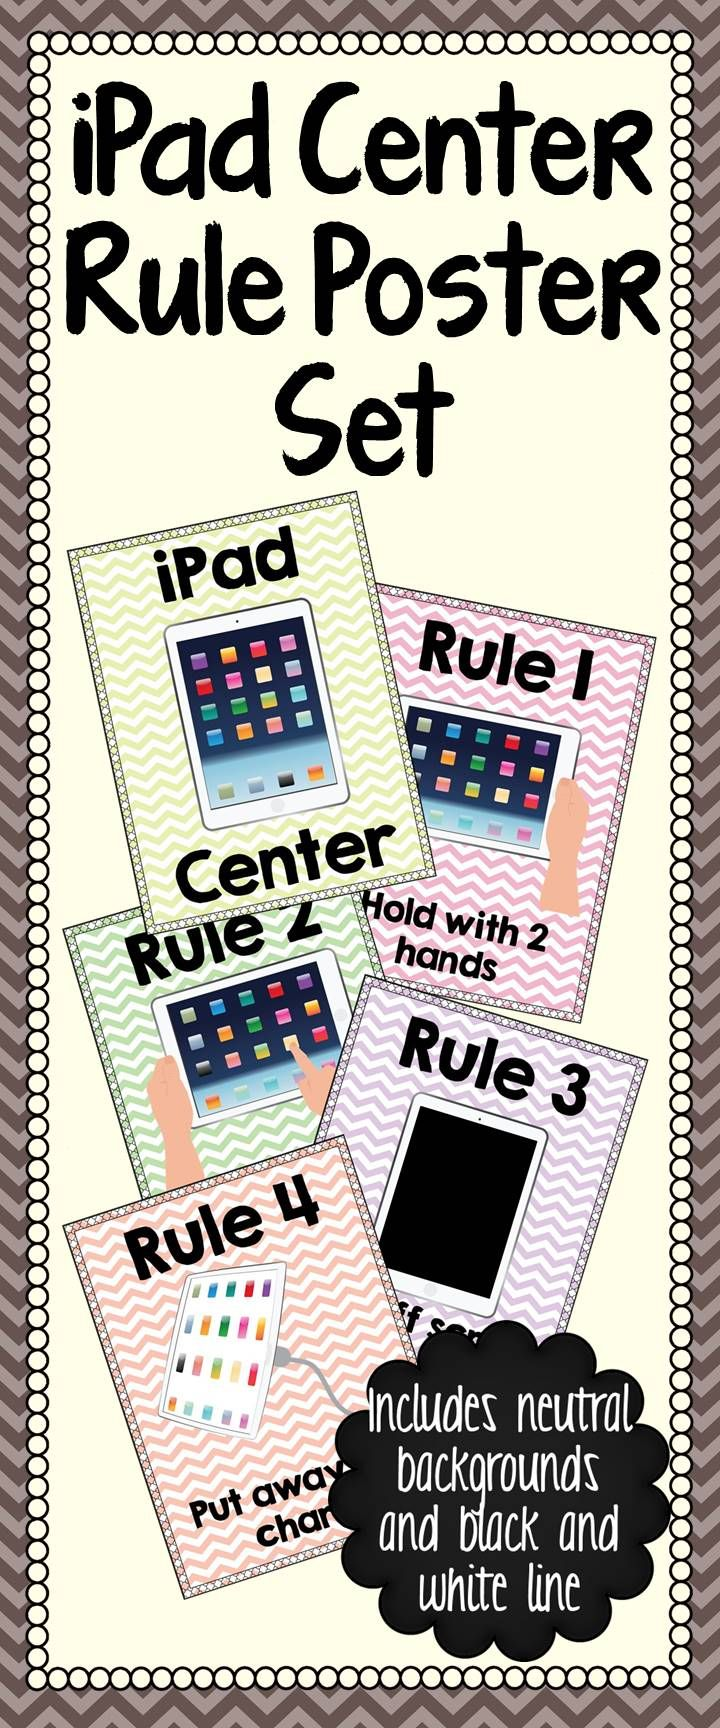 iPad Center Rule Poster Set: Remind your students the rules of how to use the classroom iPads correctly with this fun poster set. Perfect to hang behind a charging or storage station so students will be reminded each time they get an iPad.